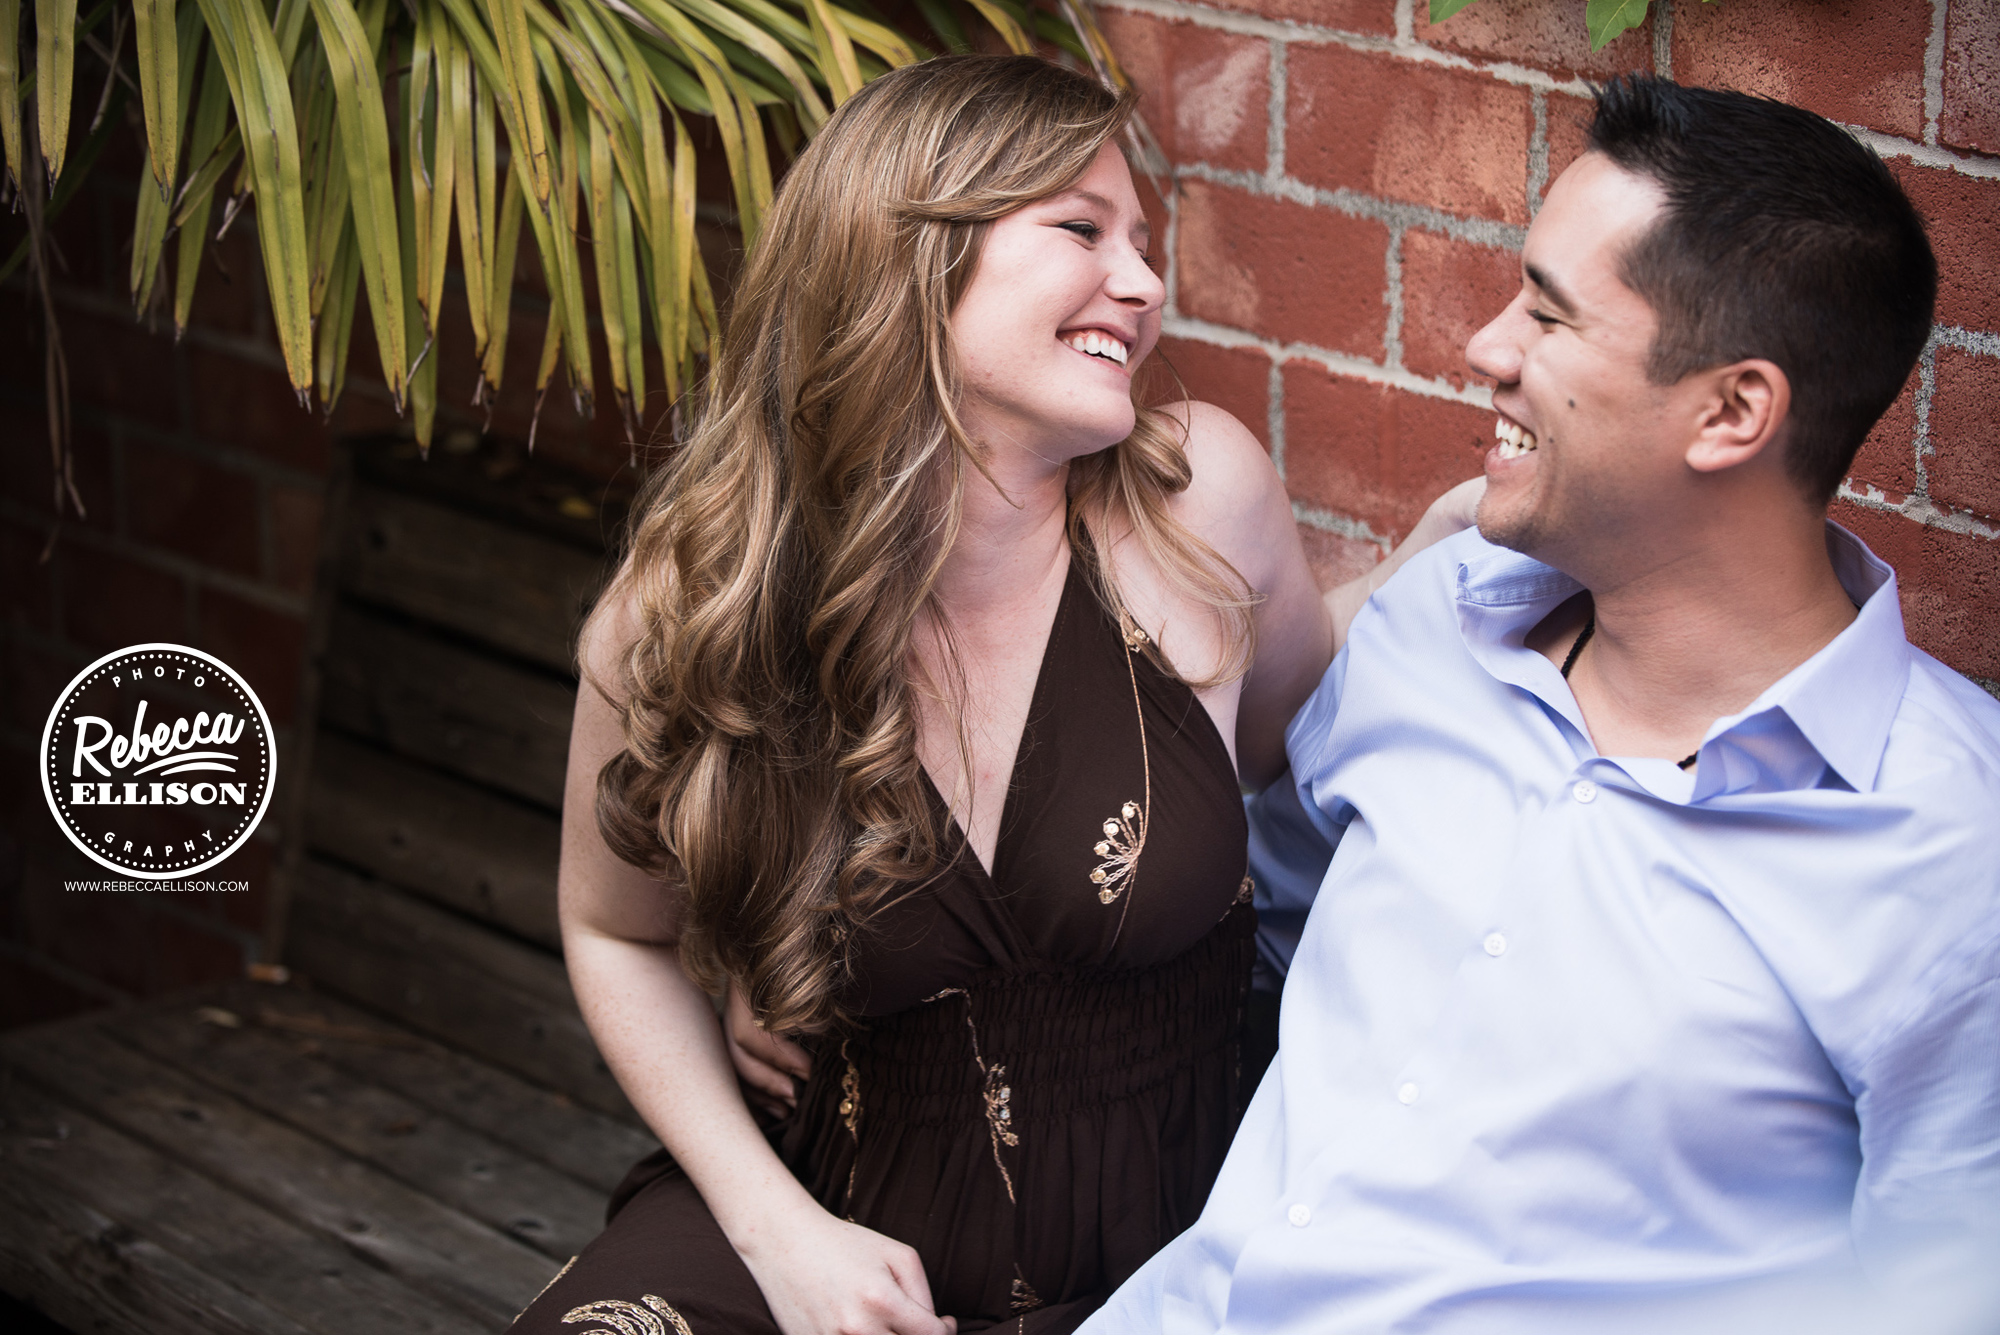 A happy couple during their engagement portrait session photographed by Ballard Engagement Photographer Rebecca Ellison